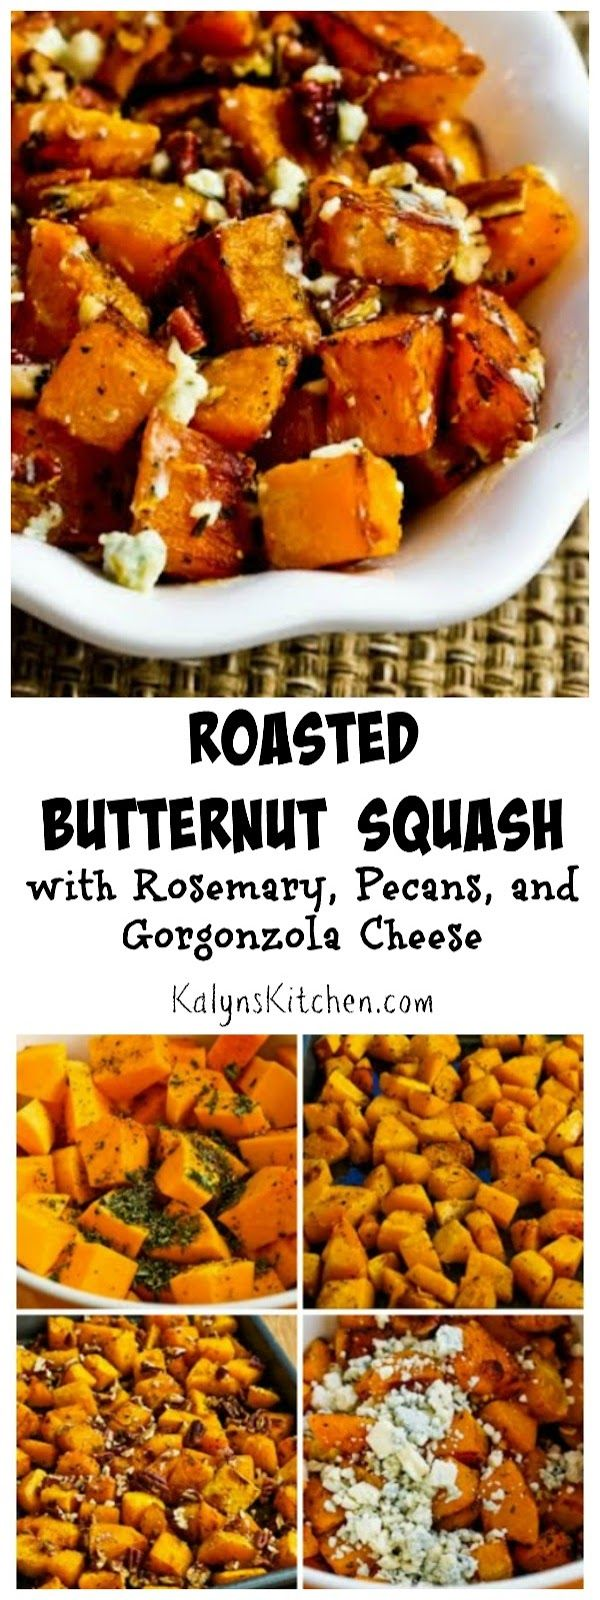 Love, love, love this Roasted Butternut Squash with Rosemary, Pecans, and Gorgonzola Cheese. This could be a good holiday side dish, but I'd love this for dinner all winter long. [from KalynsKitchen.com]